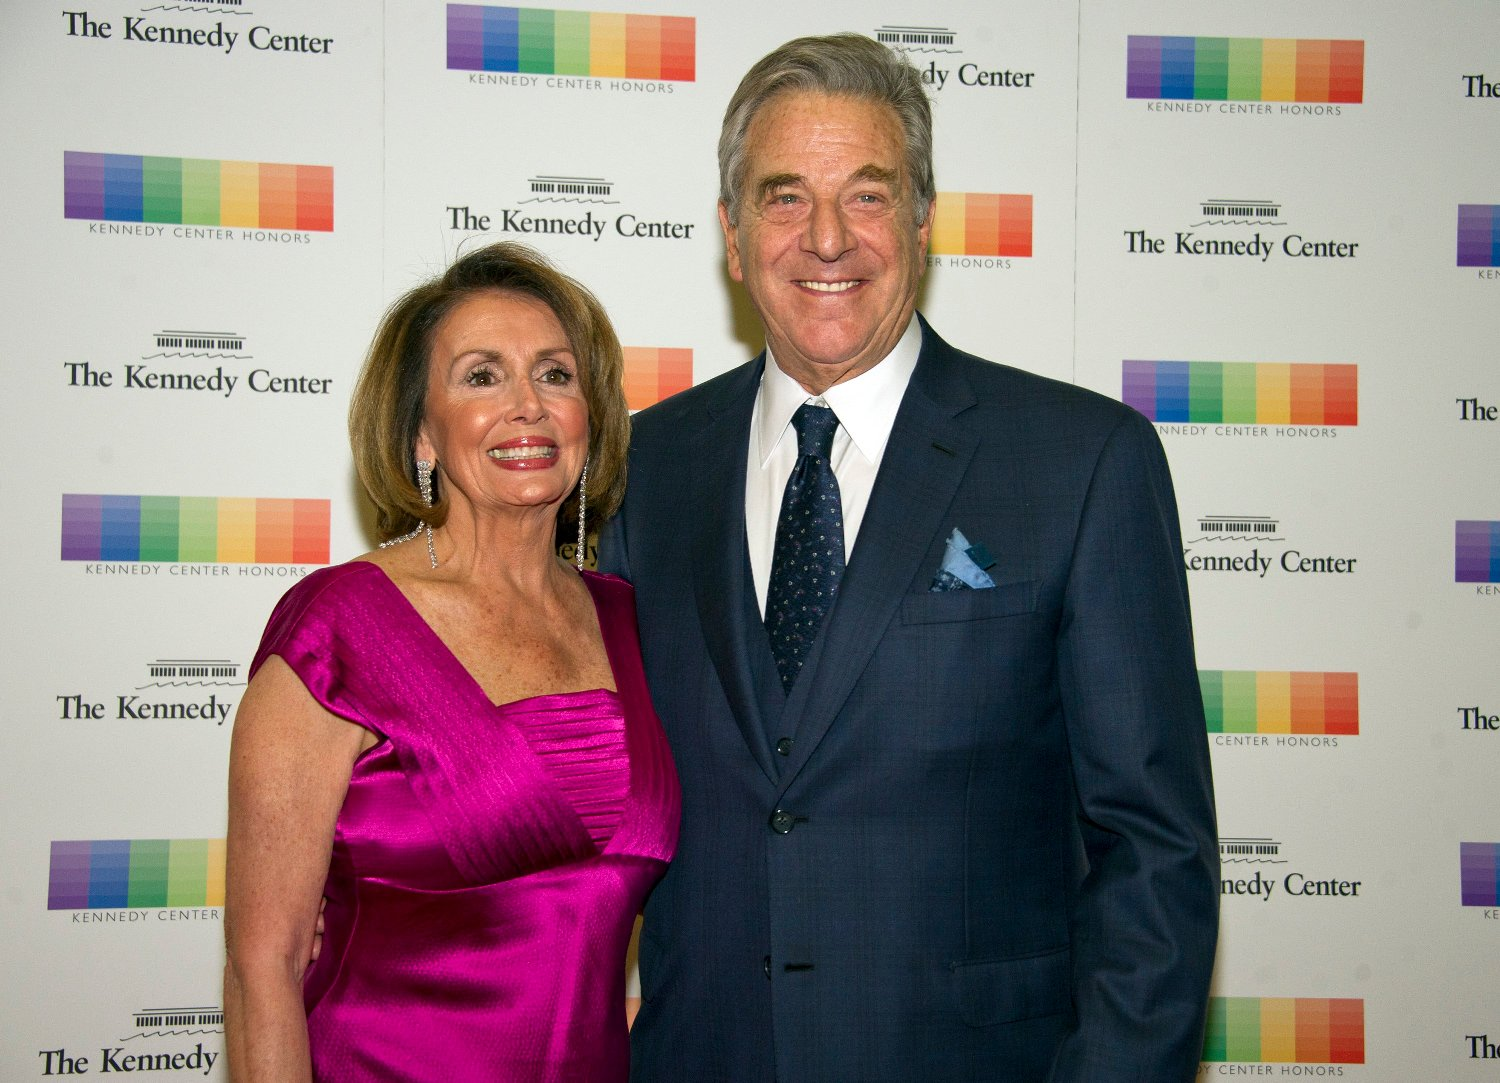 United States House Minority Leader Nancy Pelosi (Democrat of California) and her husband, Paul, arrive for the formal Artist's Dinner honoring the recipients of the 40th Annual Kennedy Center Honors hosted by United States Secretary of State Rex Tillerson at the US Department of State in Washington, D.C. on Saturday, December 2, 2017. The 2017 honorees are: American dancer and choreographer Carmen de Lavallade; Cuban American singer-songwriter and actress Gloria Estefan; American hip hop artist and entertainment icon LL COOL J; American television writer and producer Norman Lear; and American musician and record producer Lionel Richie., Image: 356766872, License: Rights-managed, Restrictions: , Model Release: no, Credit line: Profimedia, ADMedia